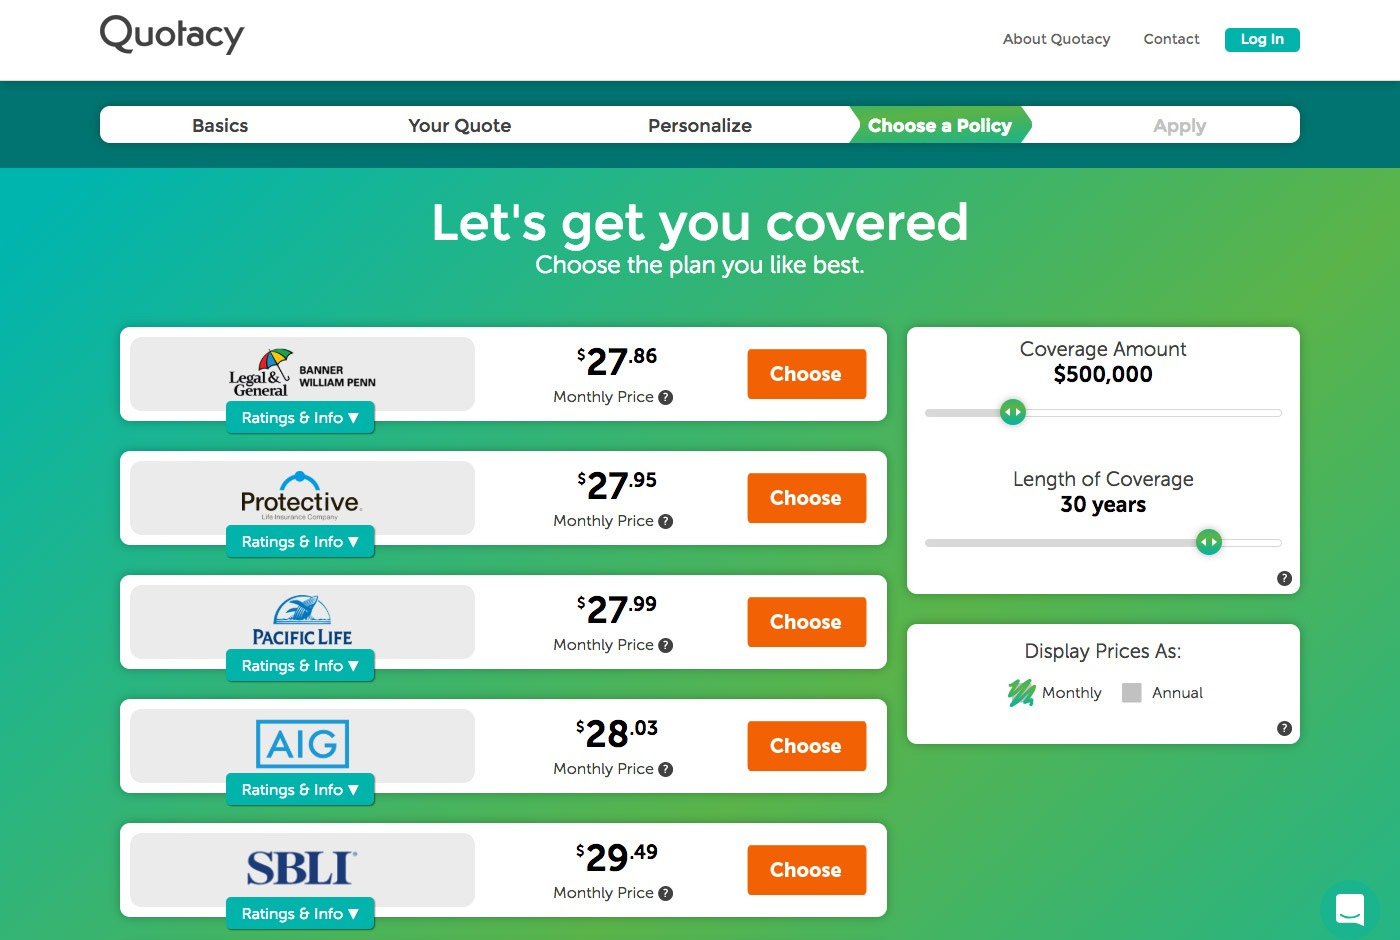 Quotacy quoting tool showing $500,000 in term coverage options